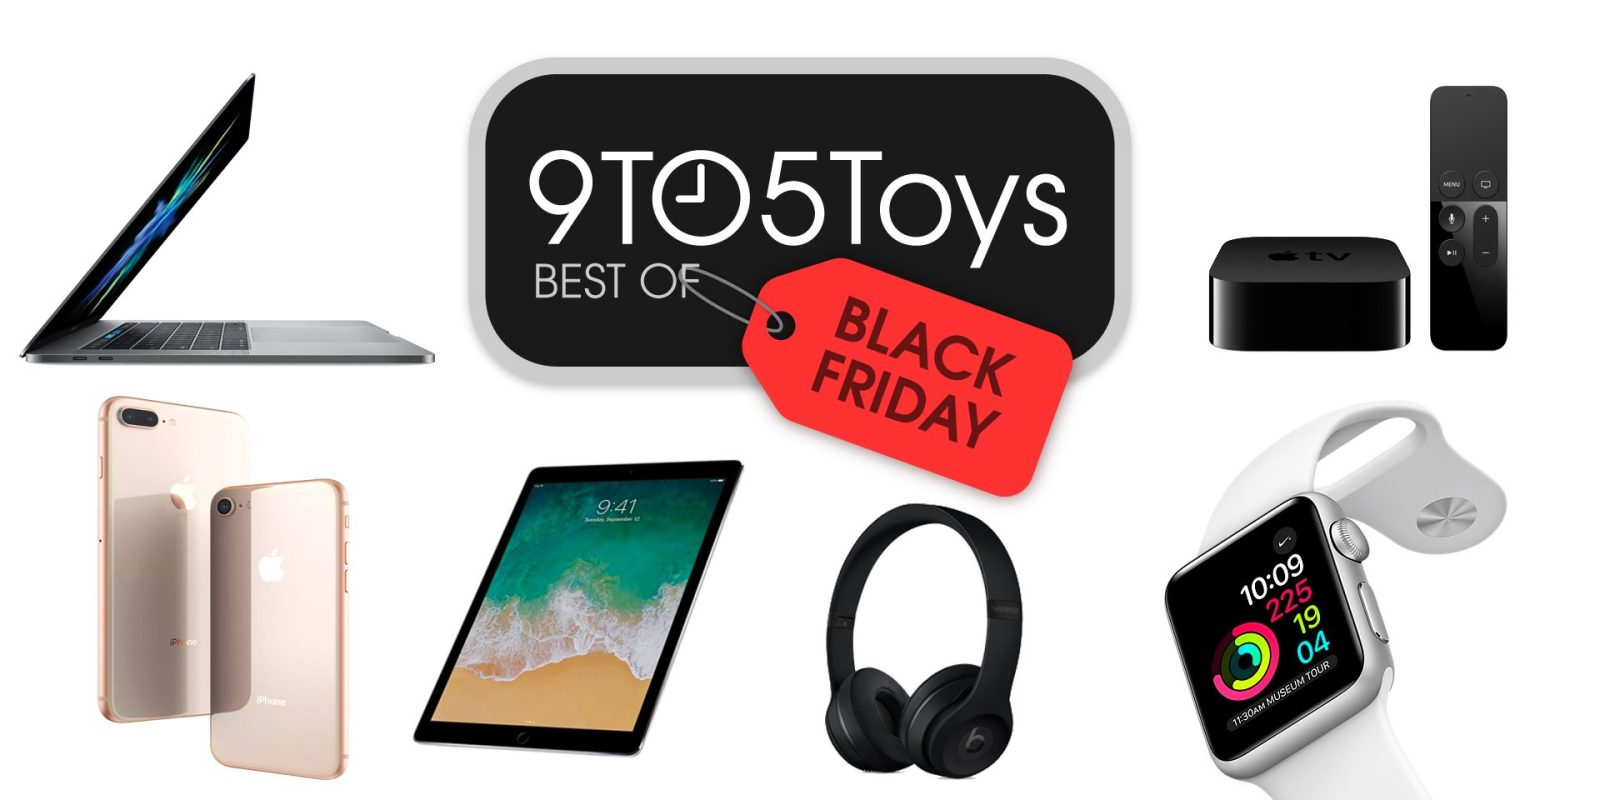 Best Apple Black Friday Deals 9 7 Inch Ipad 249 250 Off Macbooks Itunes Gift Cards More 9to5mac